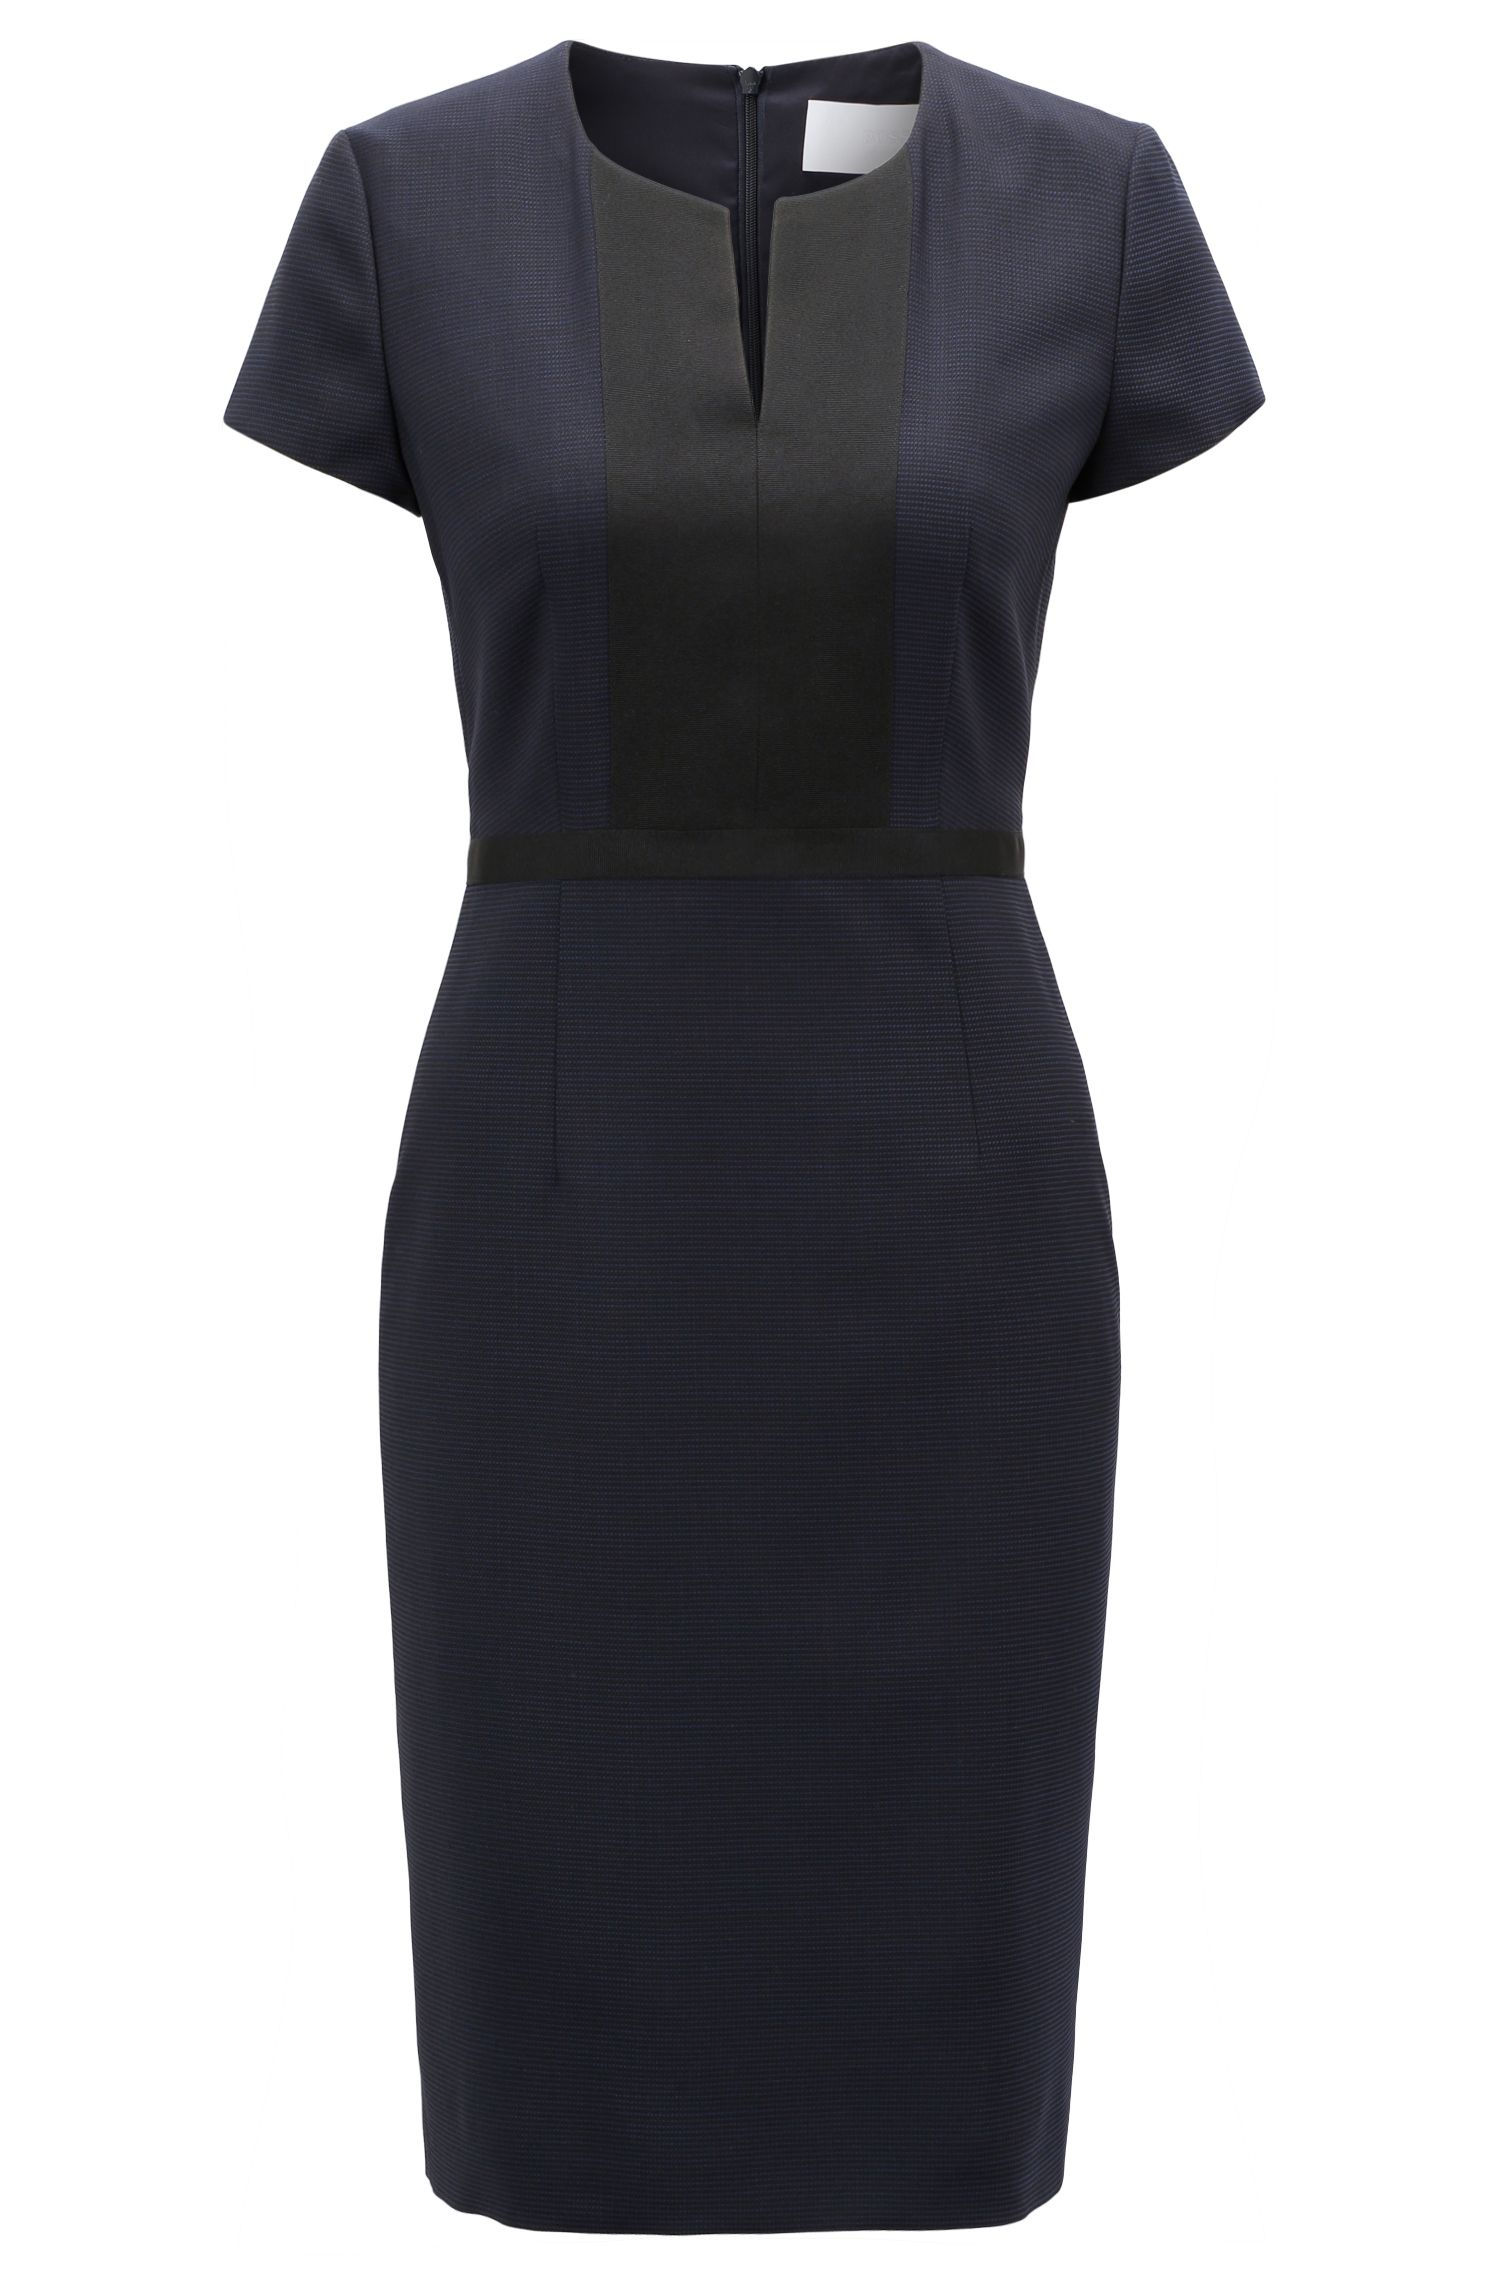 Hugo Boss - Shift dress in Italian stretch wool with notch neckline - 1